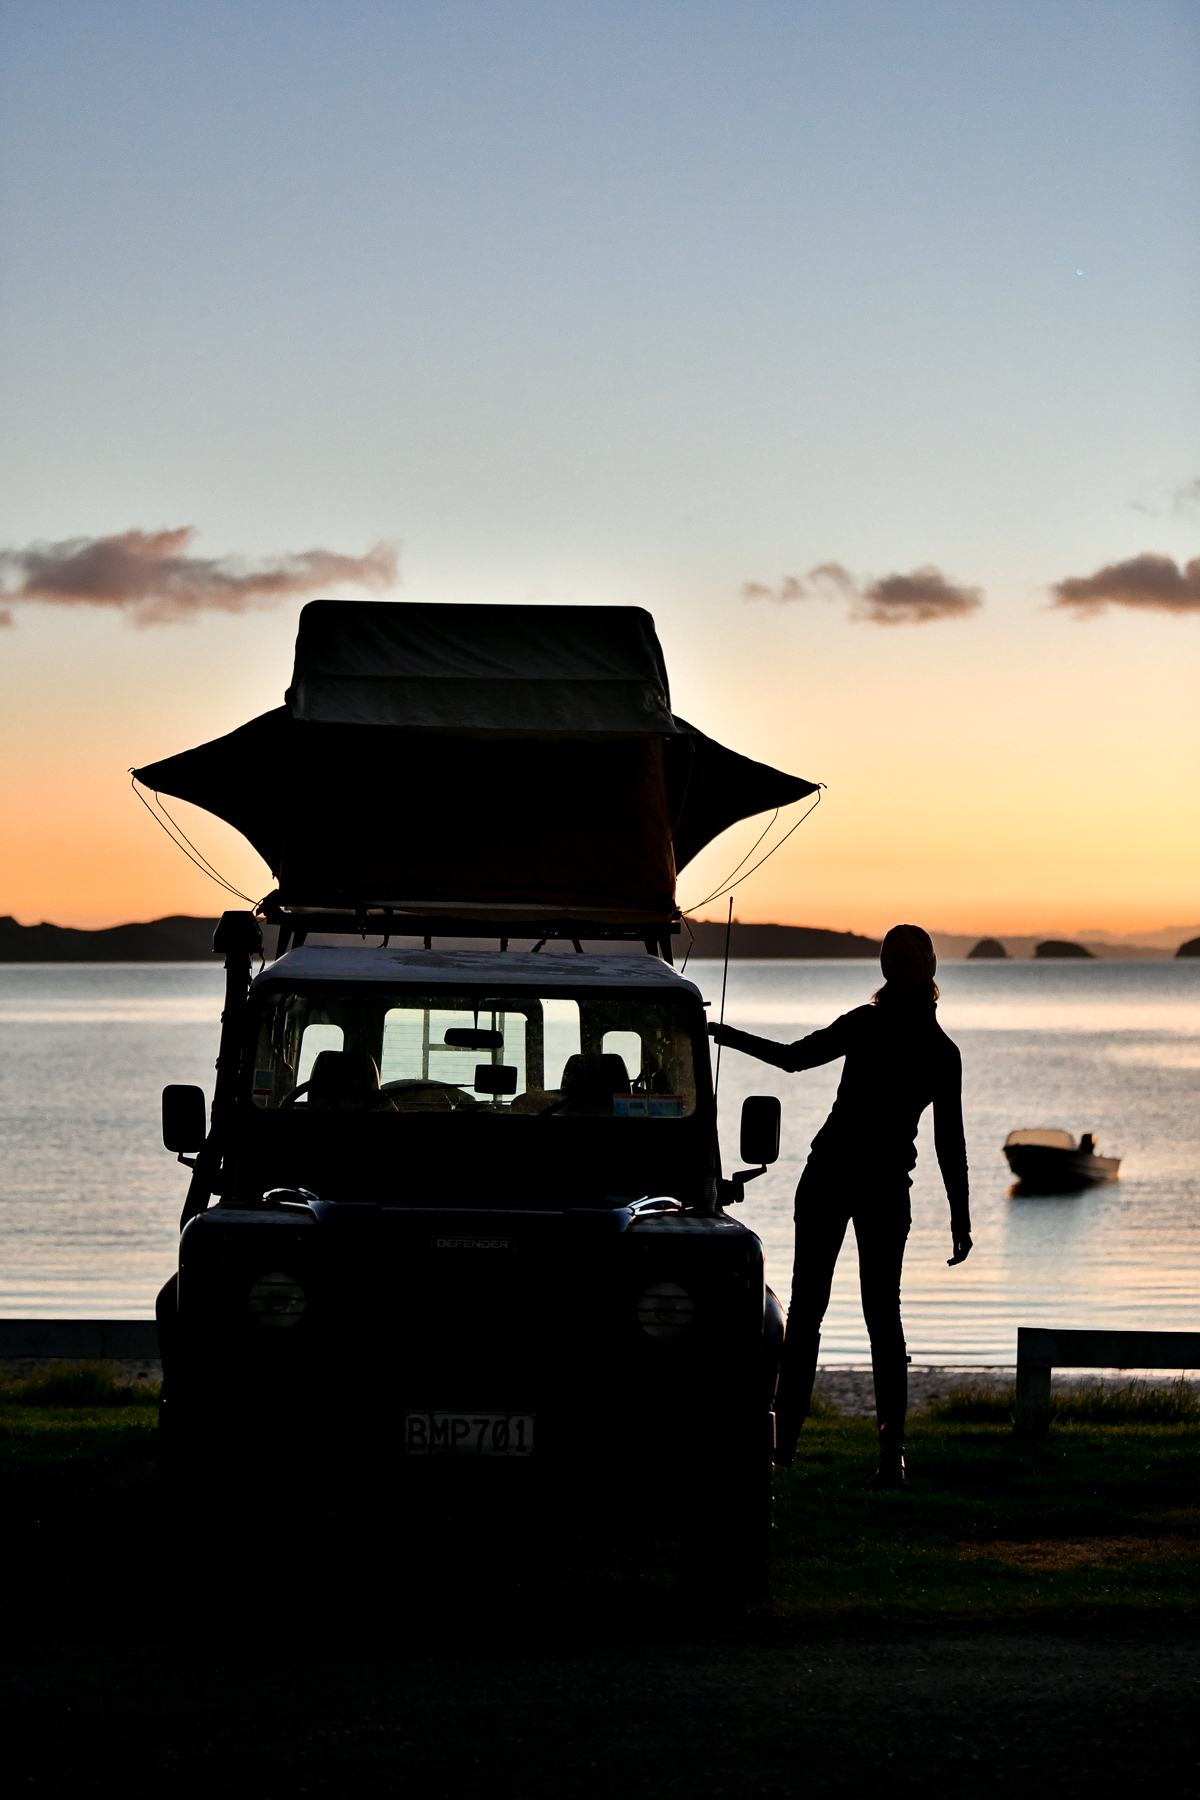 New Zealand Road Trip in a Land Rover Defender